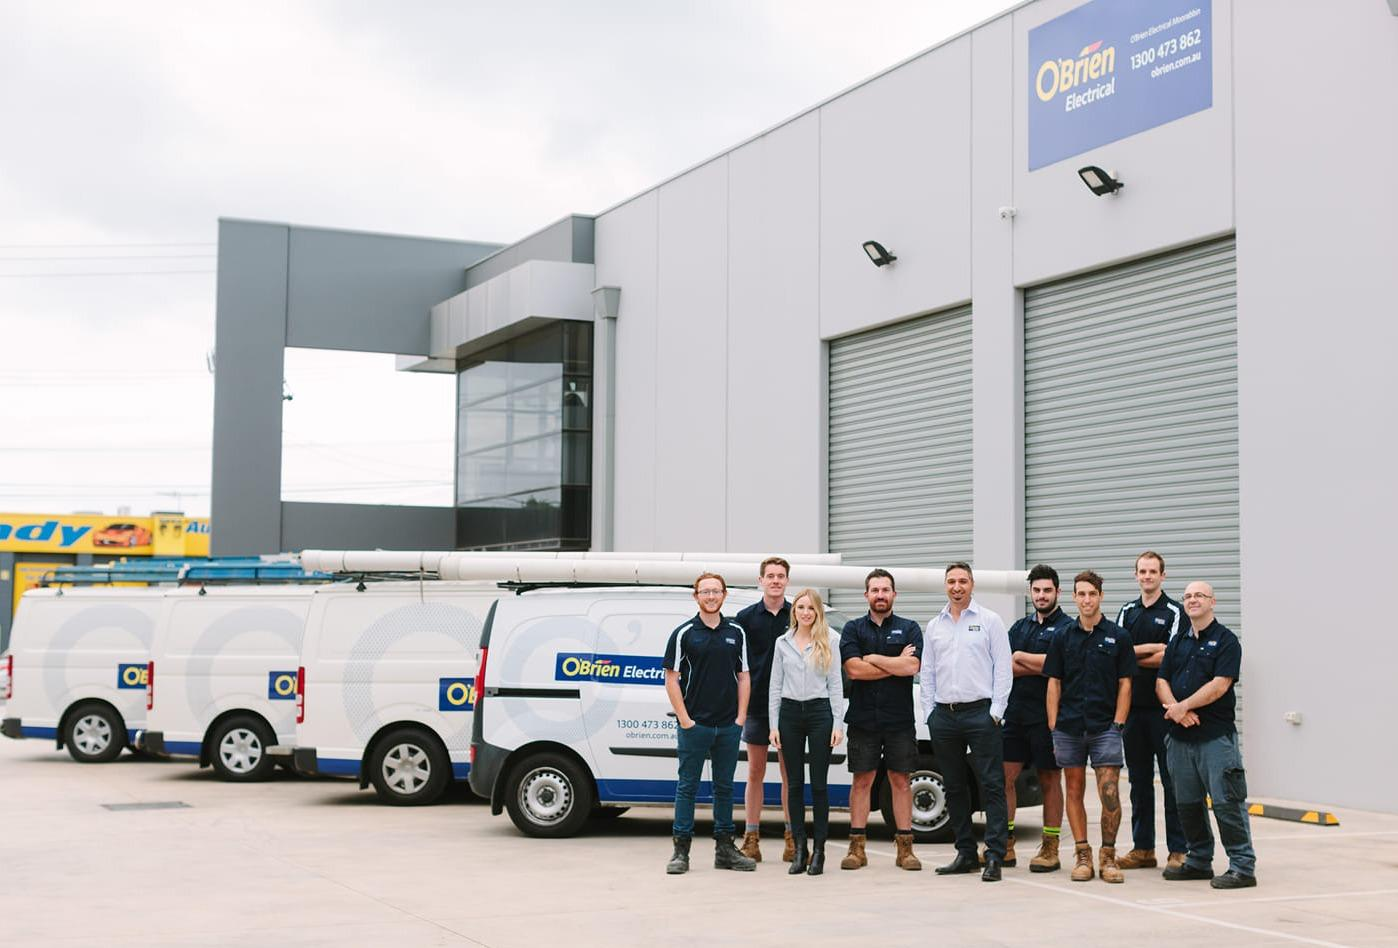 O'Brien Electrical Moorabbin